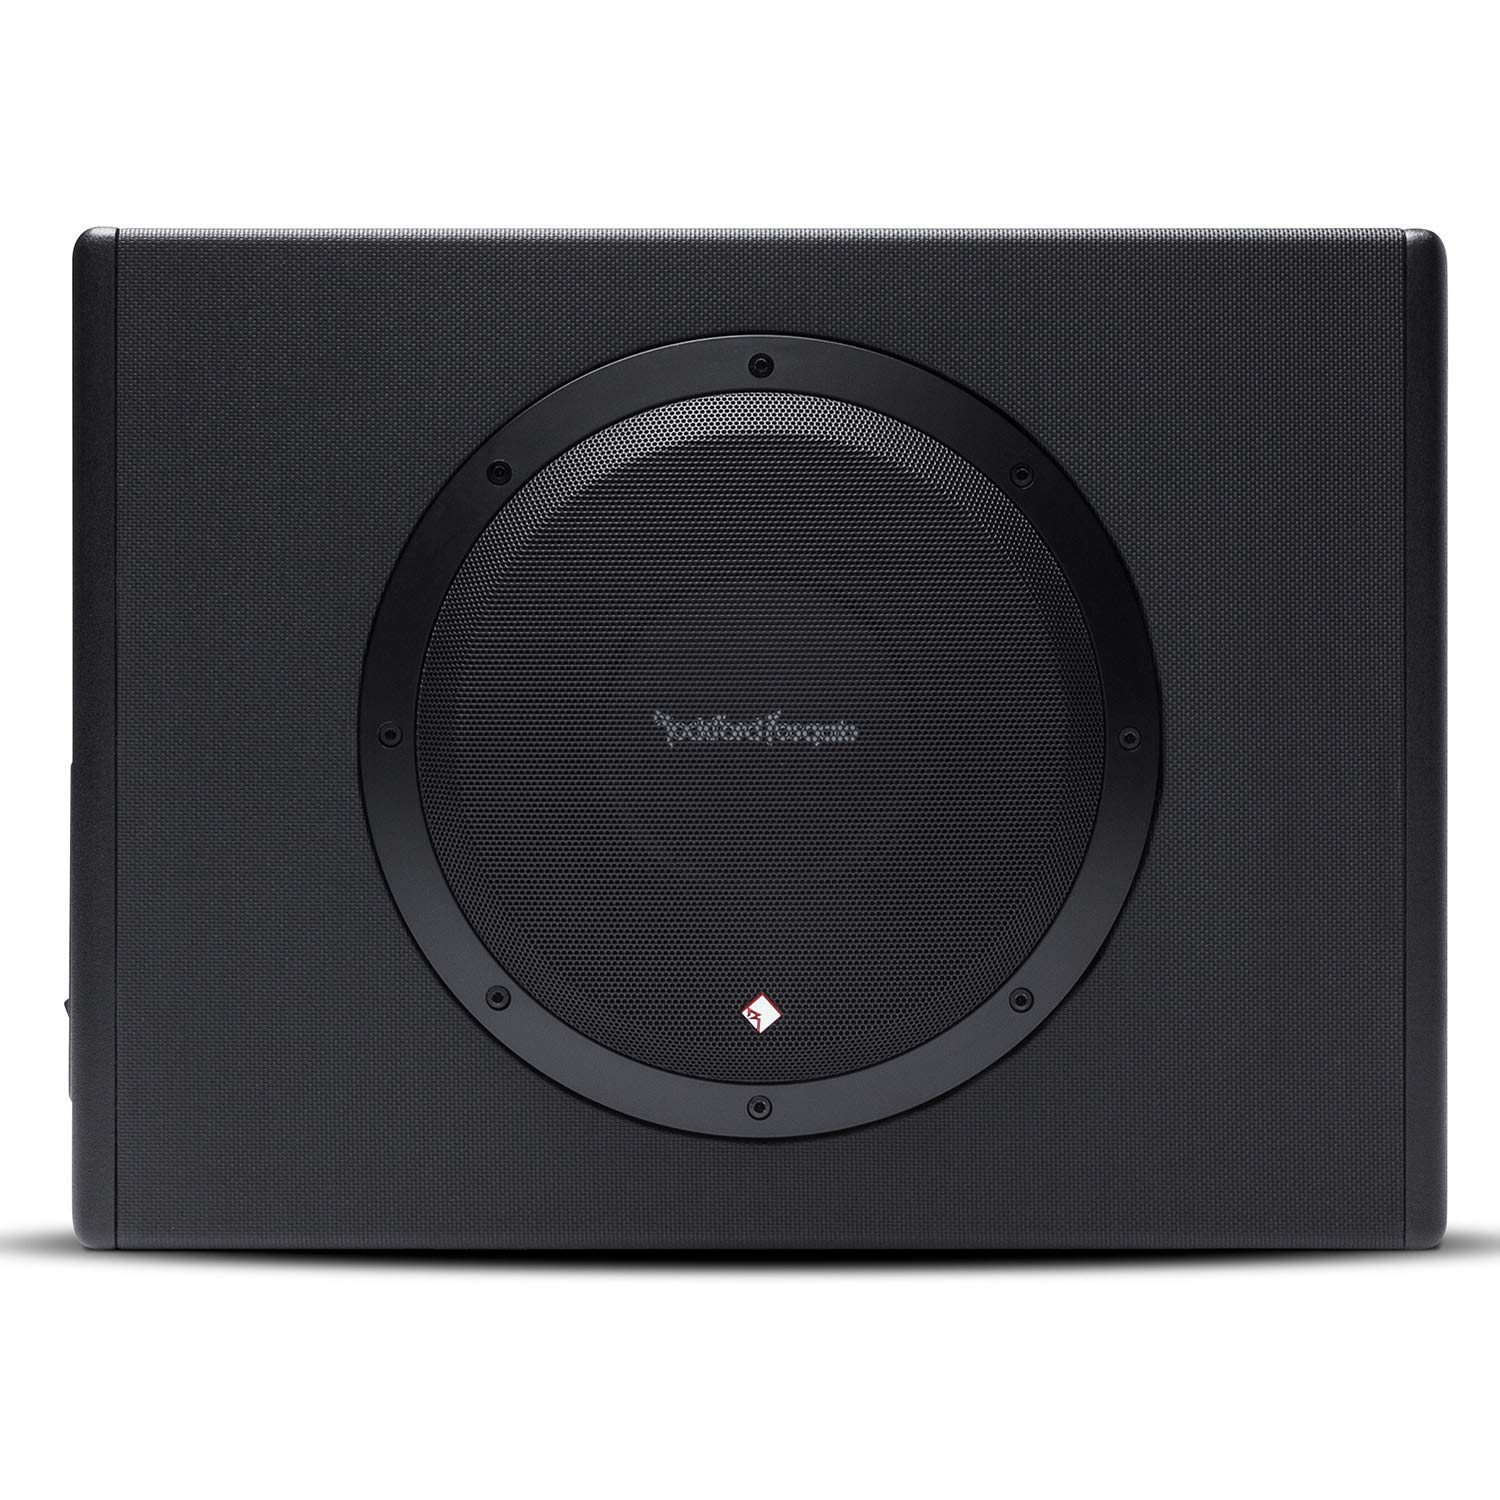 best 10 inch subwoofers buying guide - Rockford Fosgate P300